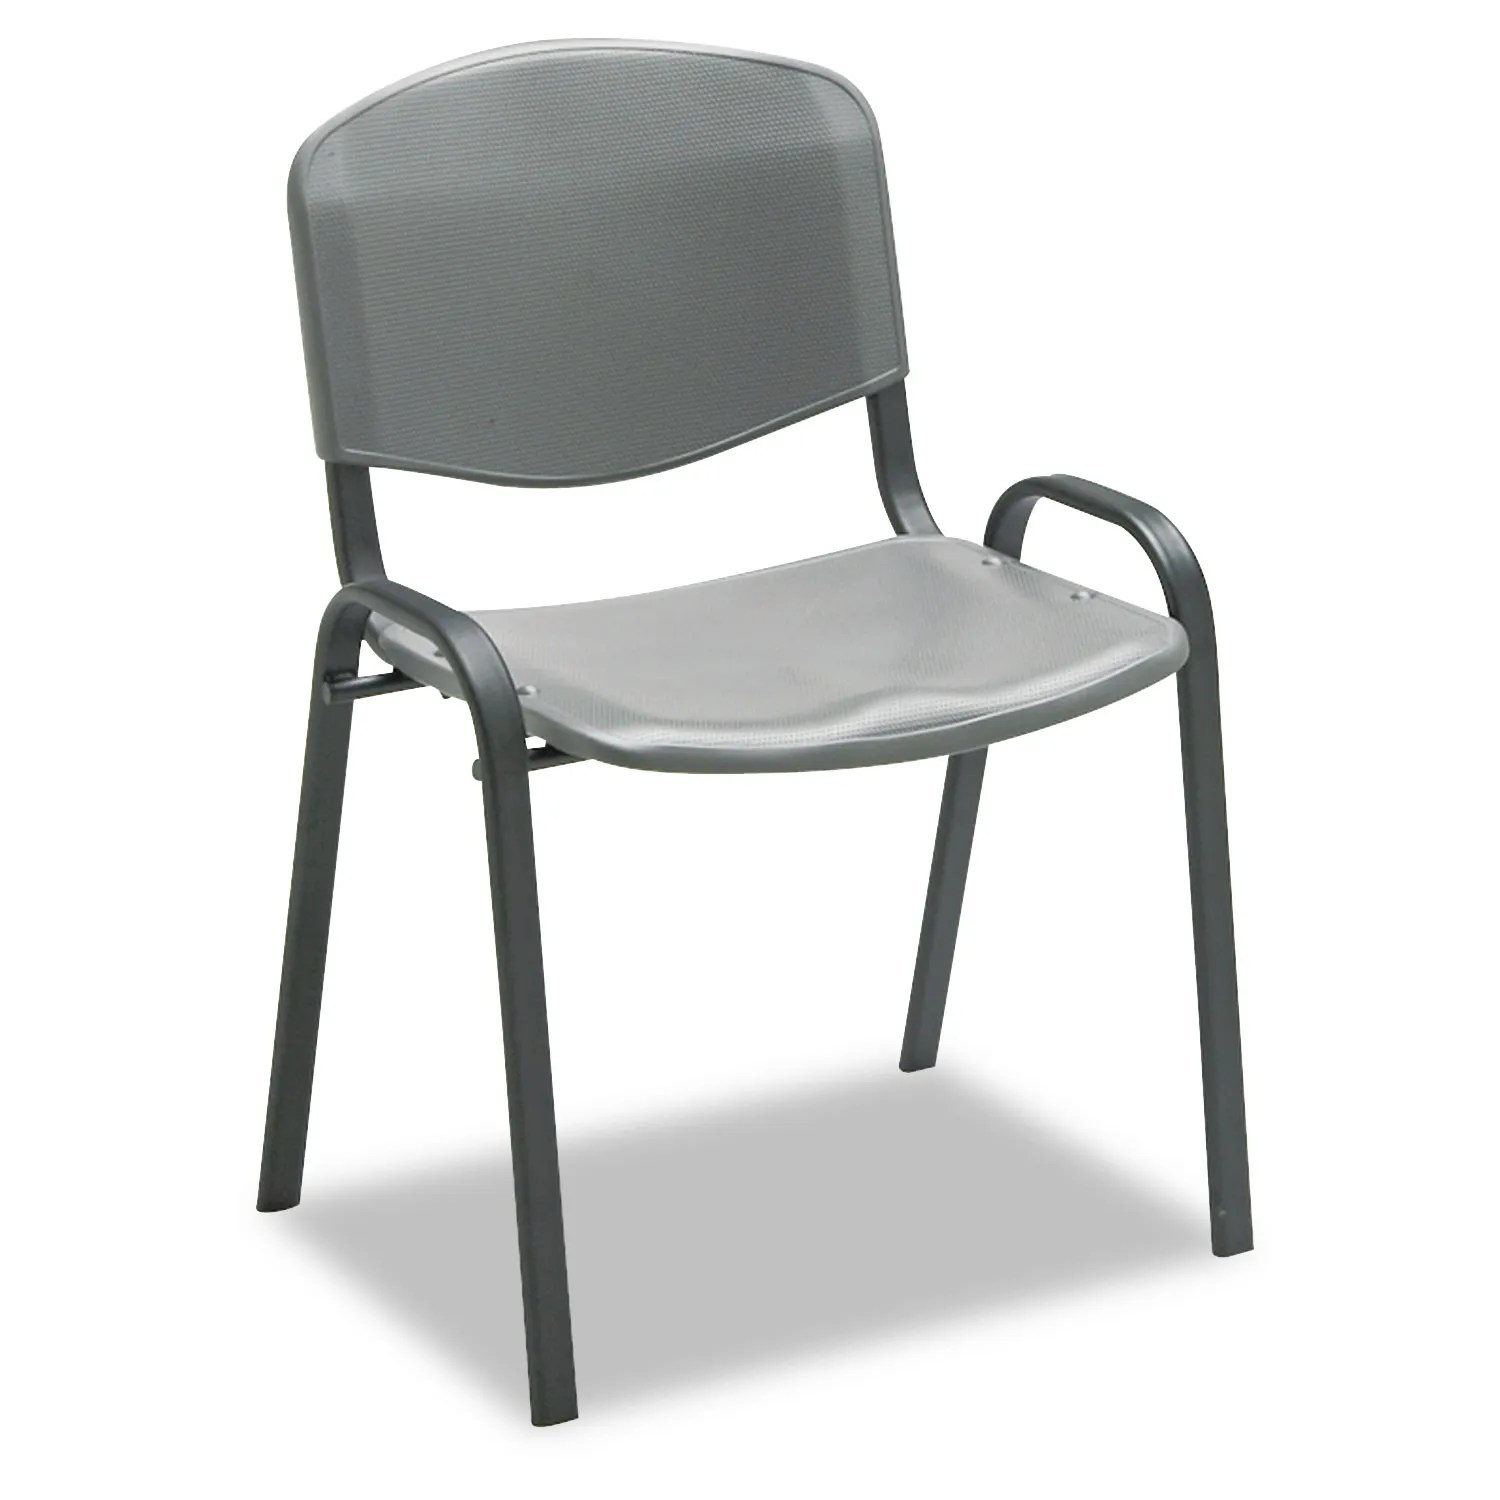 Stacking Chairs Charcoal W Black Frame 4 Carton